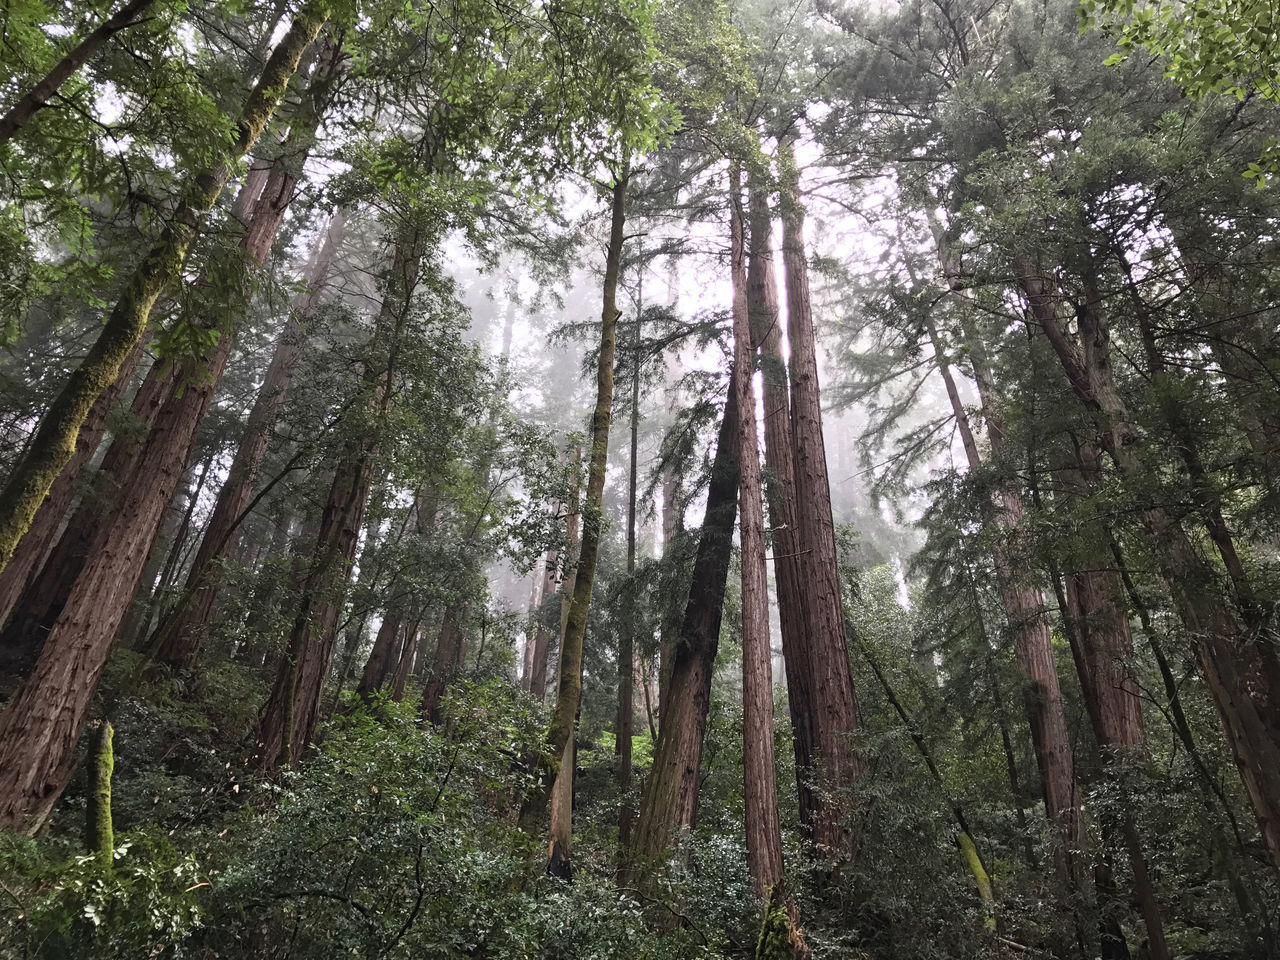 Muir Woods National Monument. California, USA. Photo by Tom Bland. Beauty In Nature California Forest Growth IPhone IPhoneography Landscape Magical Muir Woods Nature No People Outdoors Quiet Redwood Redwood Trees Redwoods Rural Tranquility Trees WoodLand Woods Misty Mist